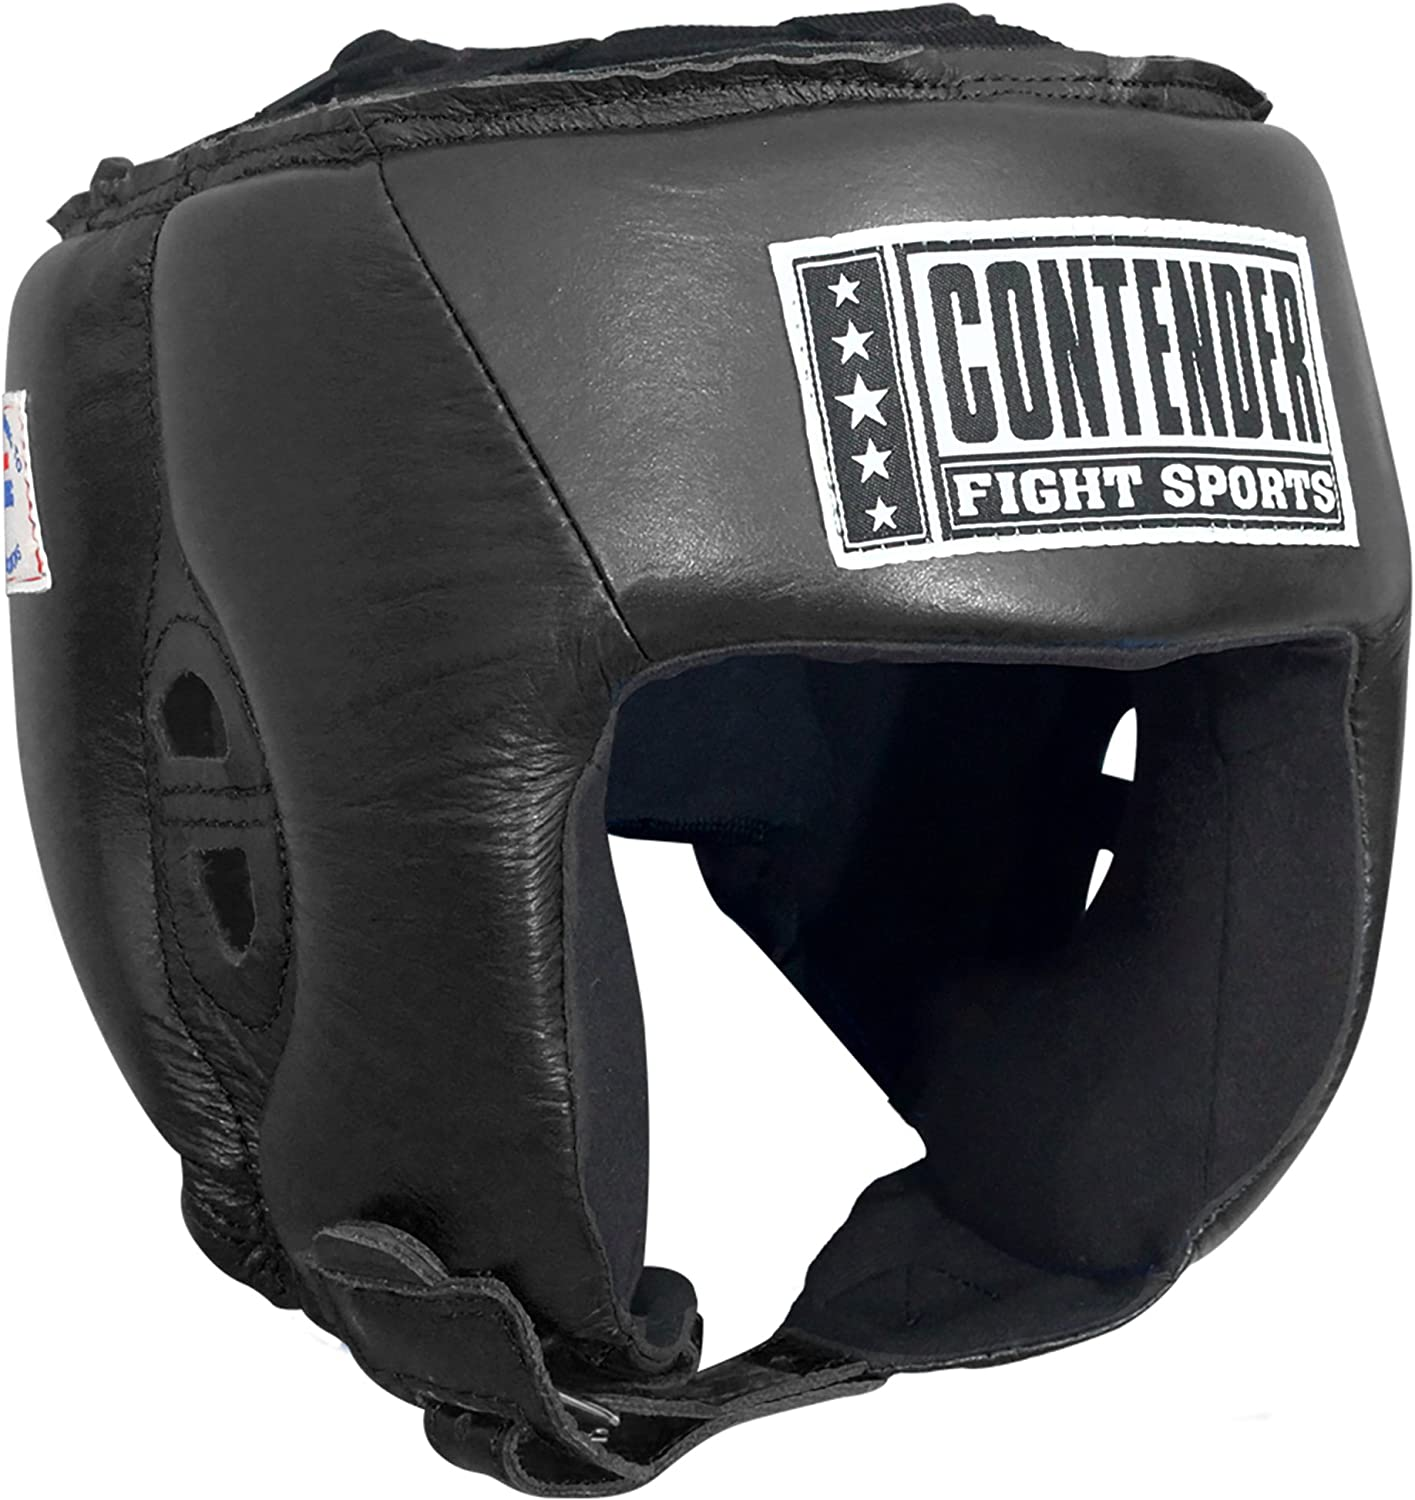 Contender Fight Sports Competition Cheek Boxing Headgear without Cheap mail Latest item order specialty store